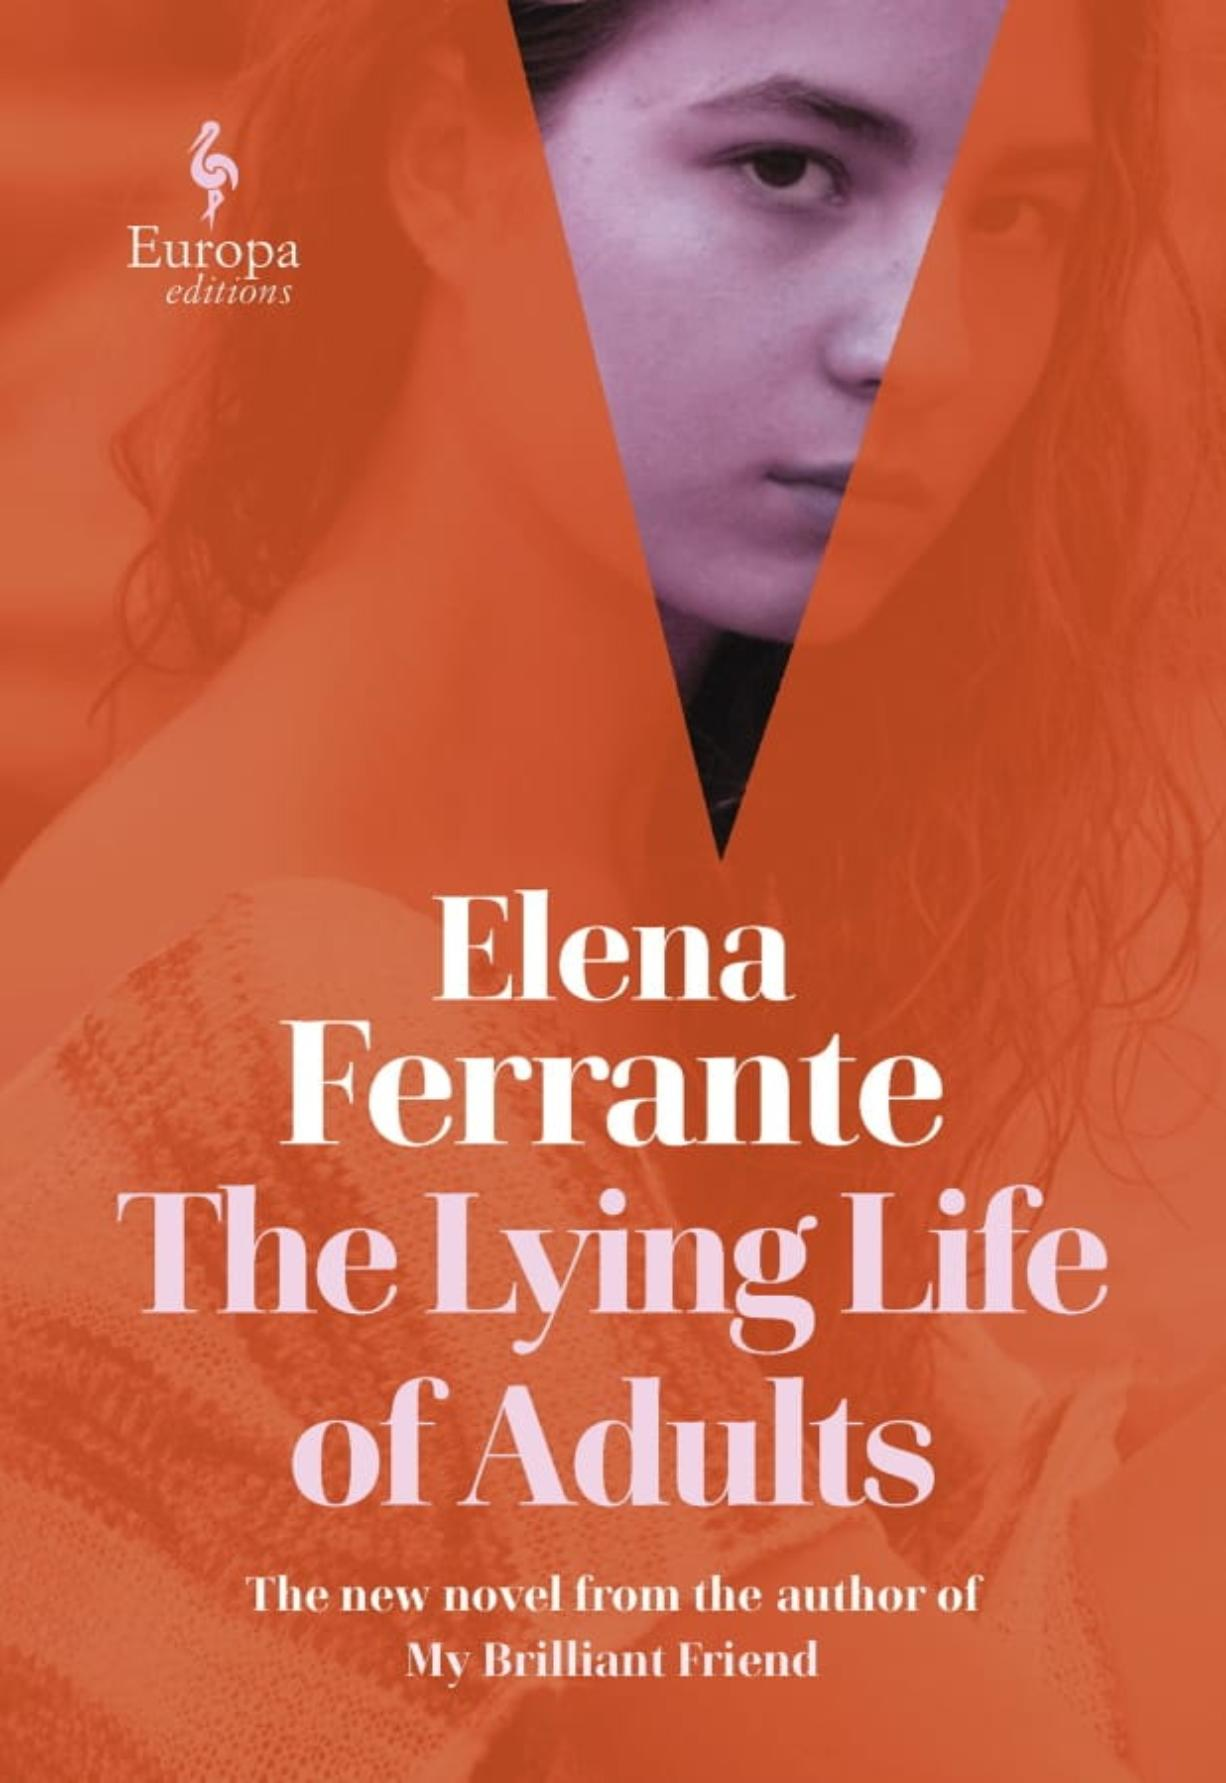 """This cover image released by Europa Editions shows """"The Lying Life of Adults"""" by Elena Ferrante."""